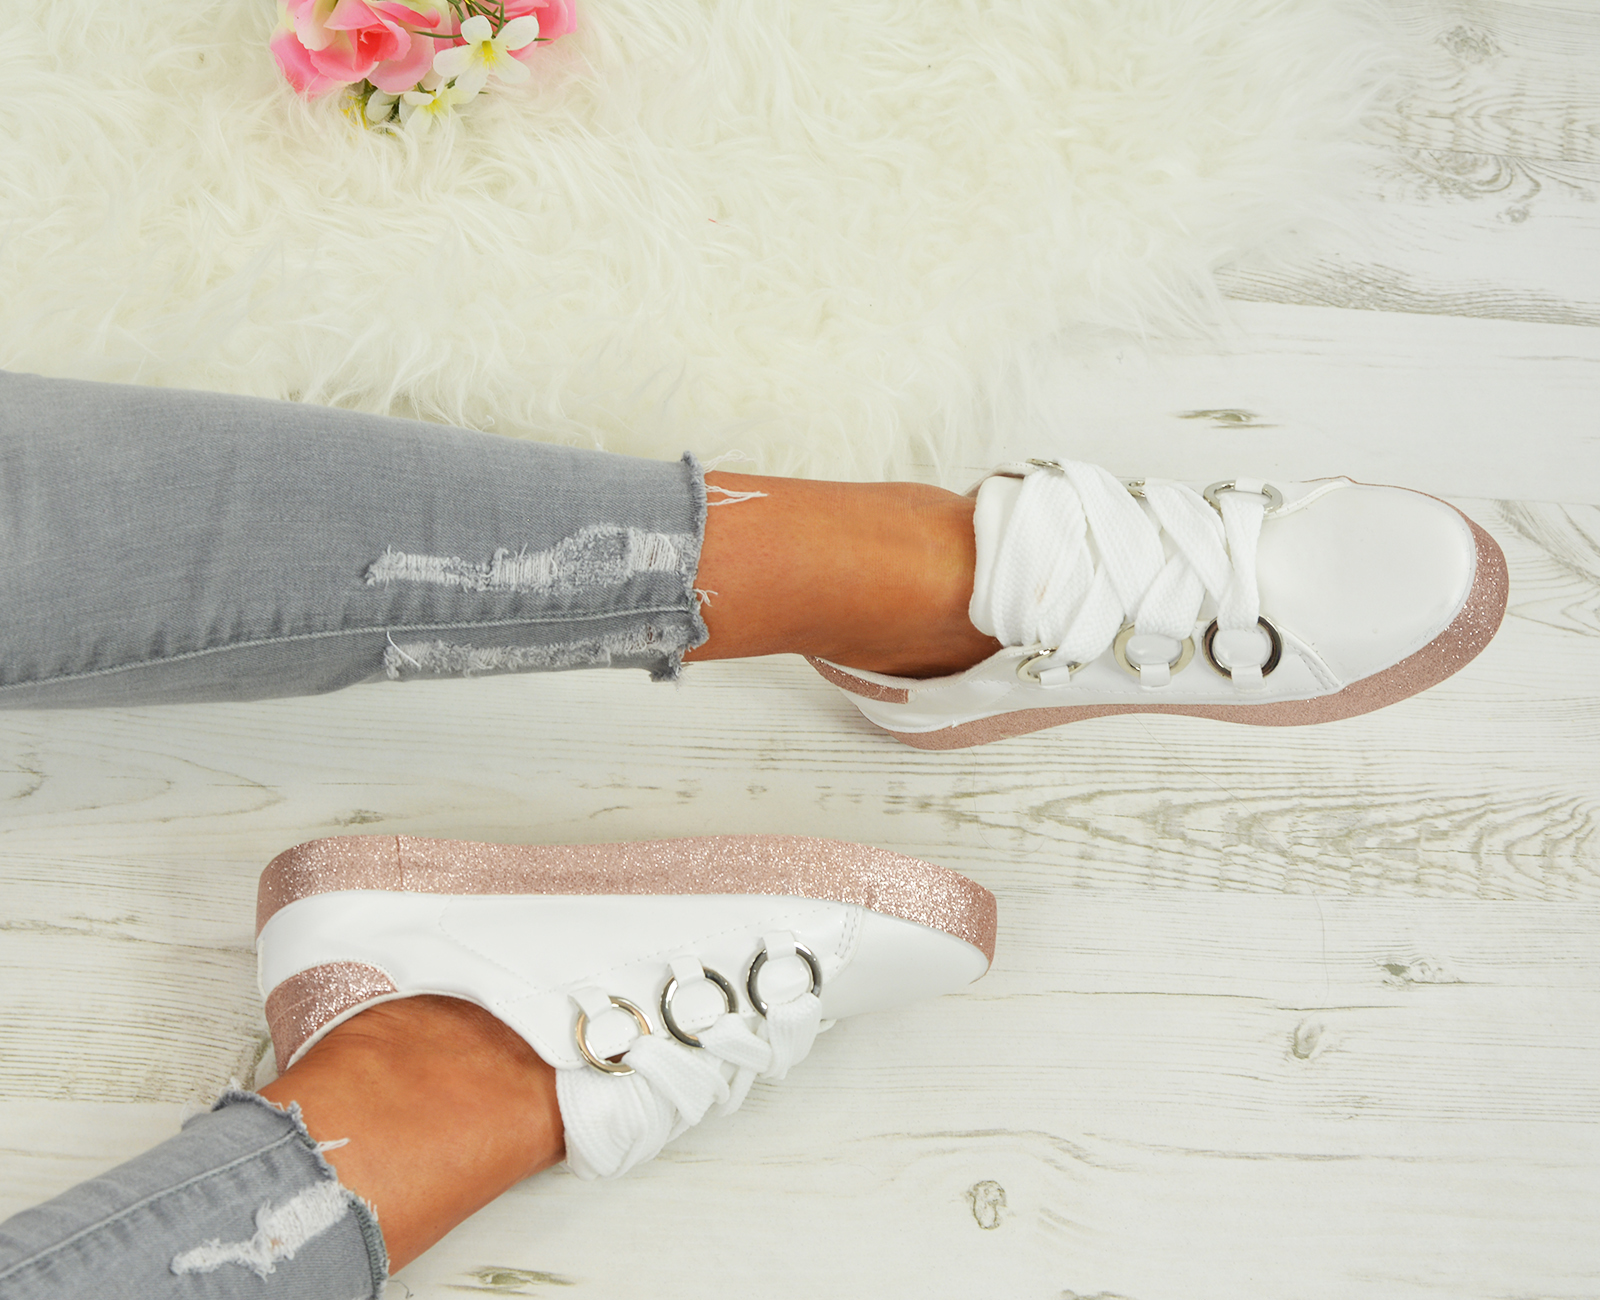 LADIES-WOMENS-GLITTER-SNEAKERS-SPARKLE-TRAINERS-LACE-UP-PLIMSOLL-PUMPS-SHOES thumbnail 25